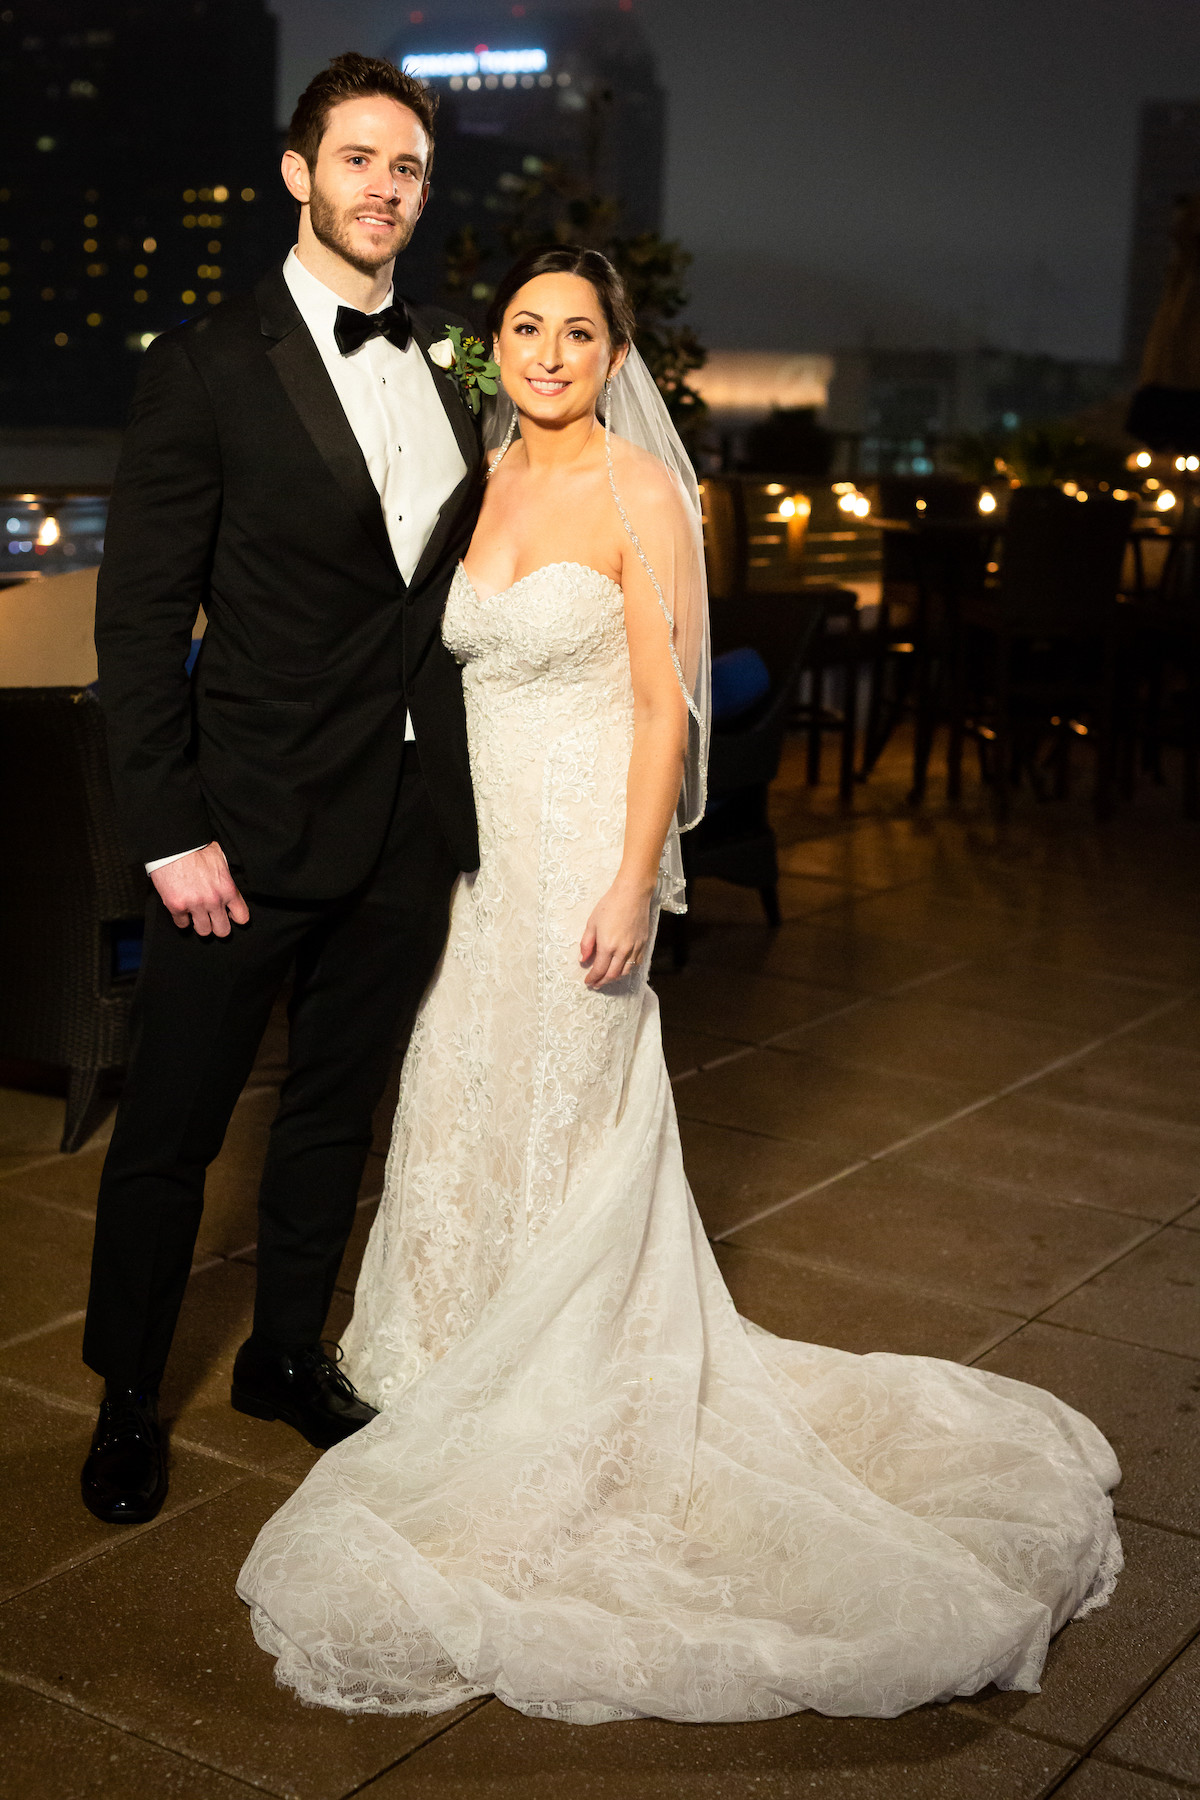 Married at First Sight stars Brett and Olivia